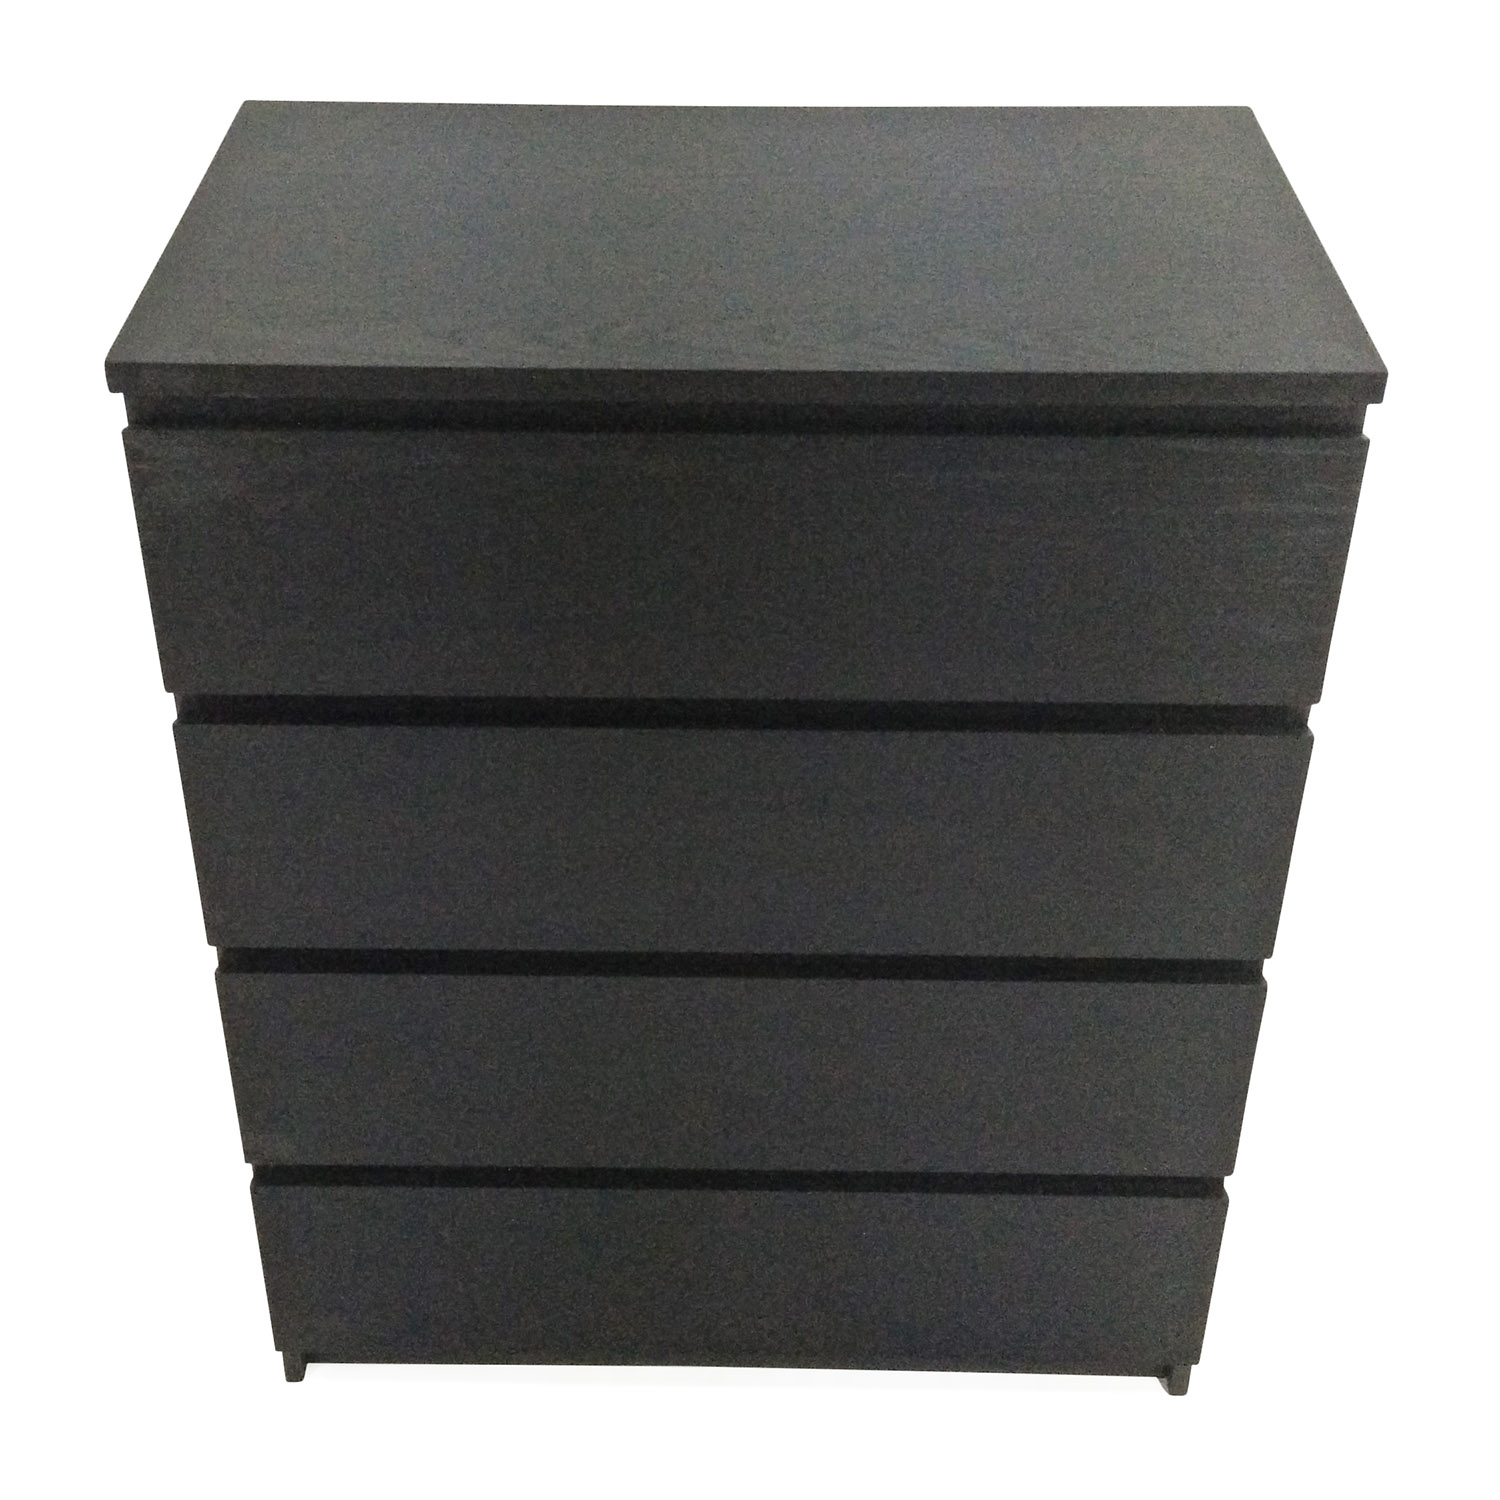 IKEA MALM Black 4-Drawer Dresser for sale